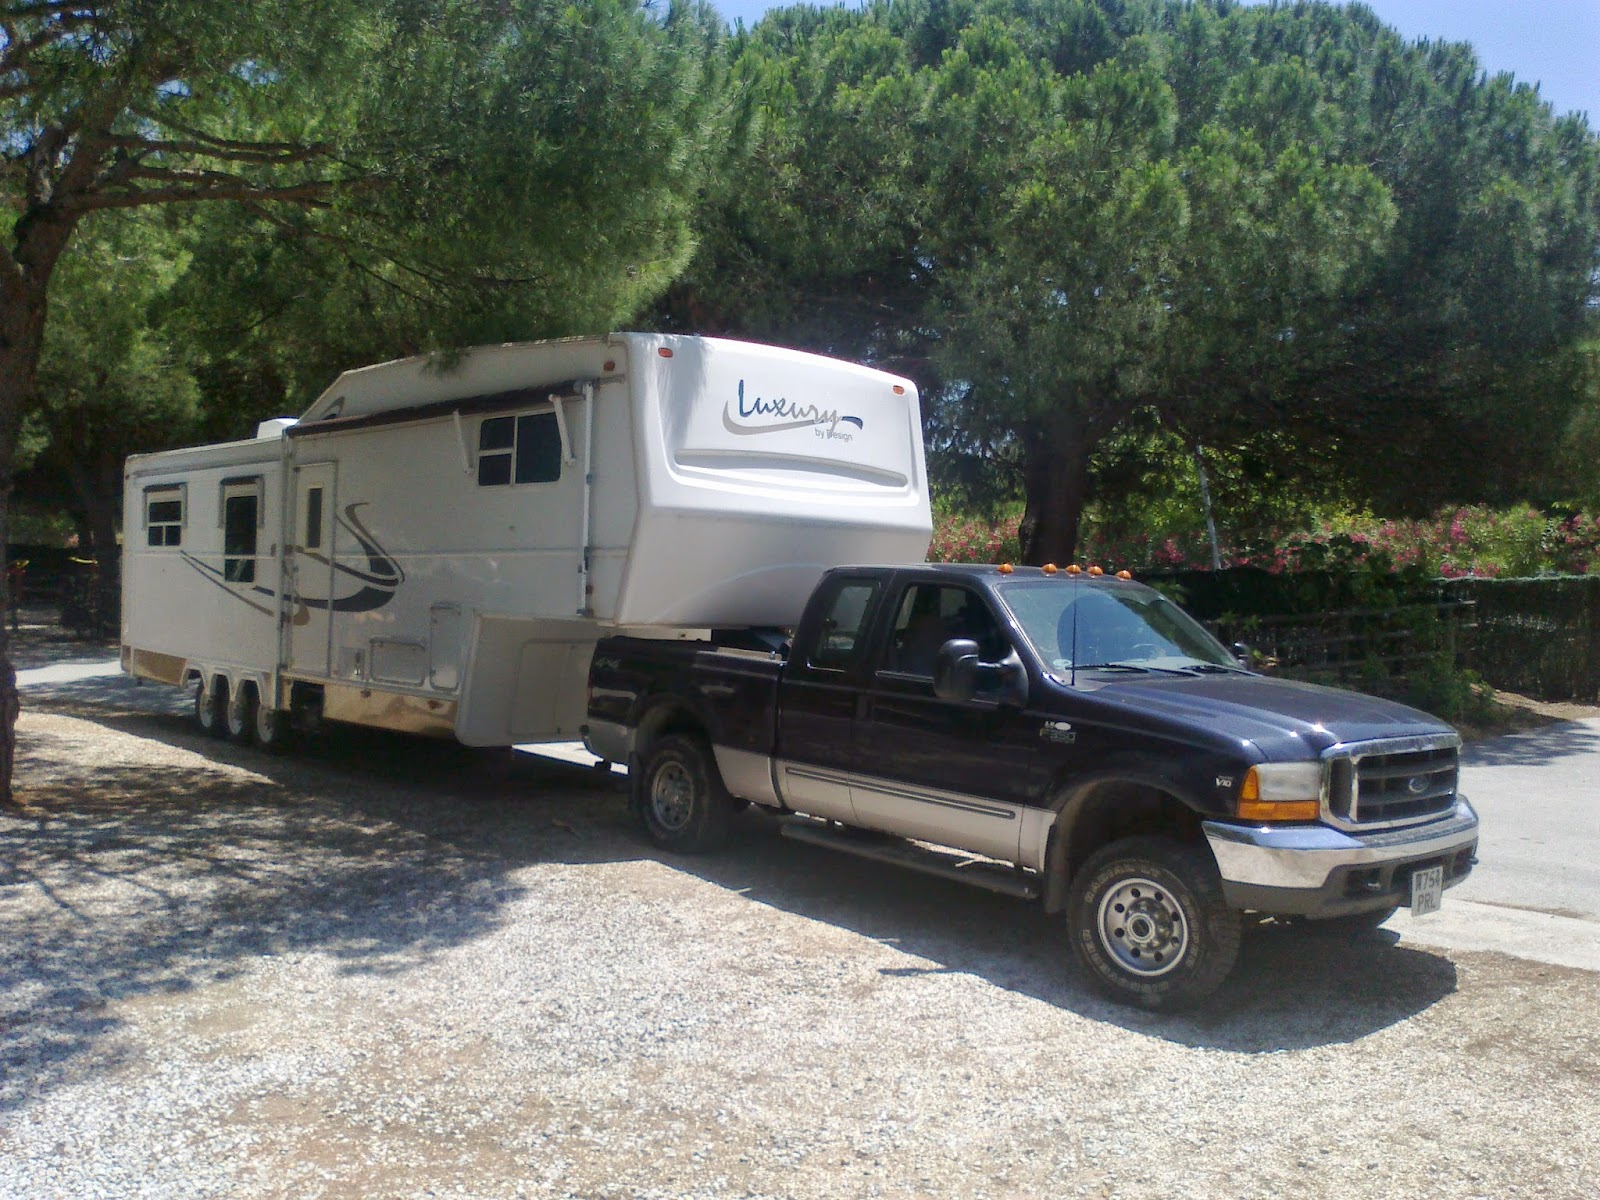 Towing a 5th wheel trailer in Europe